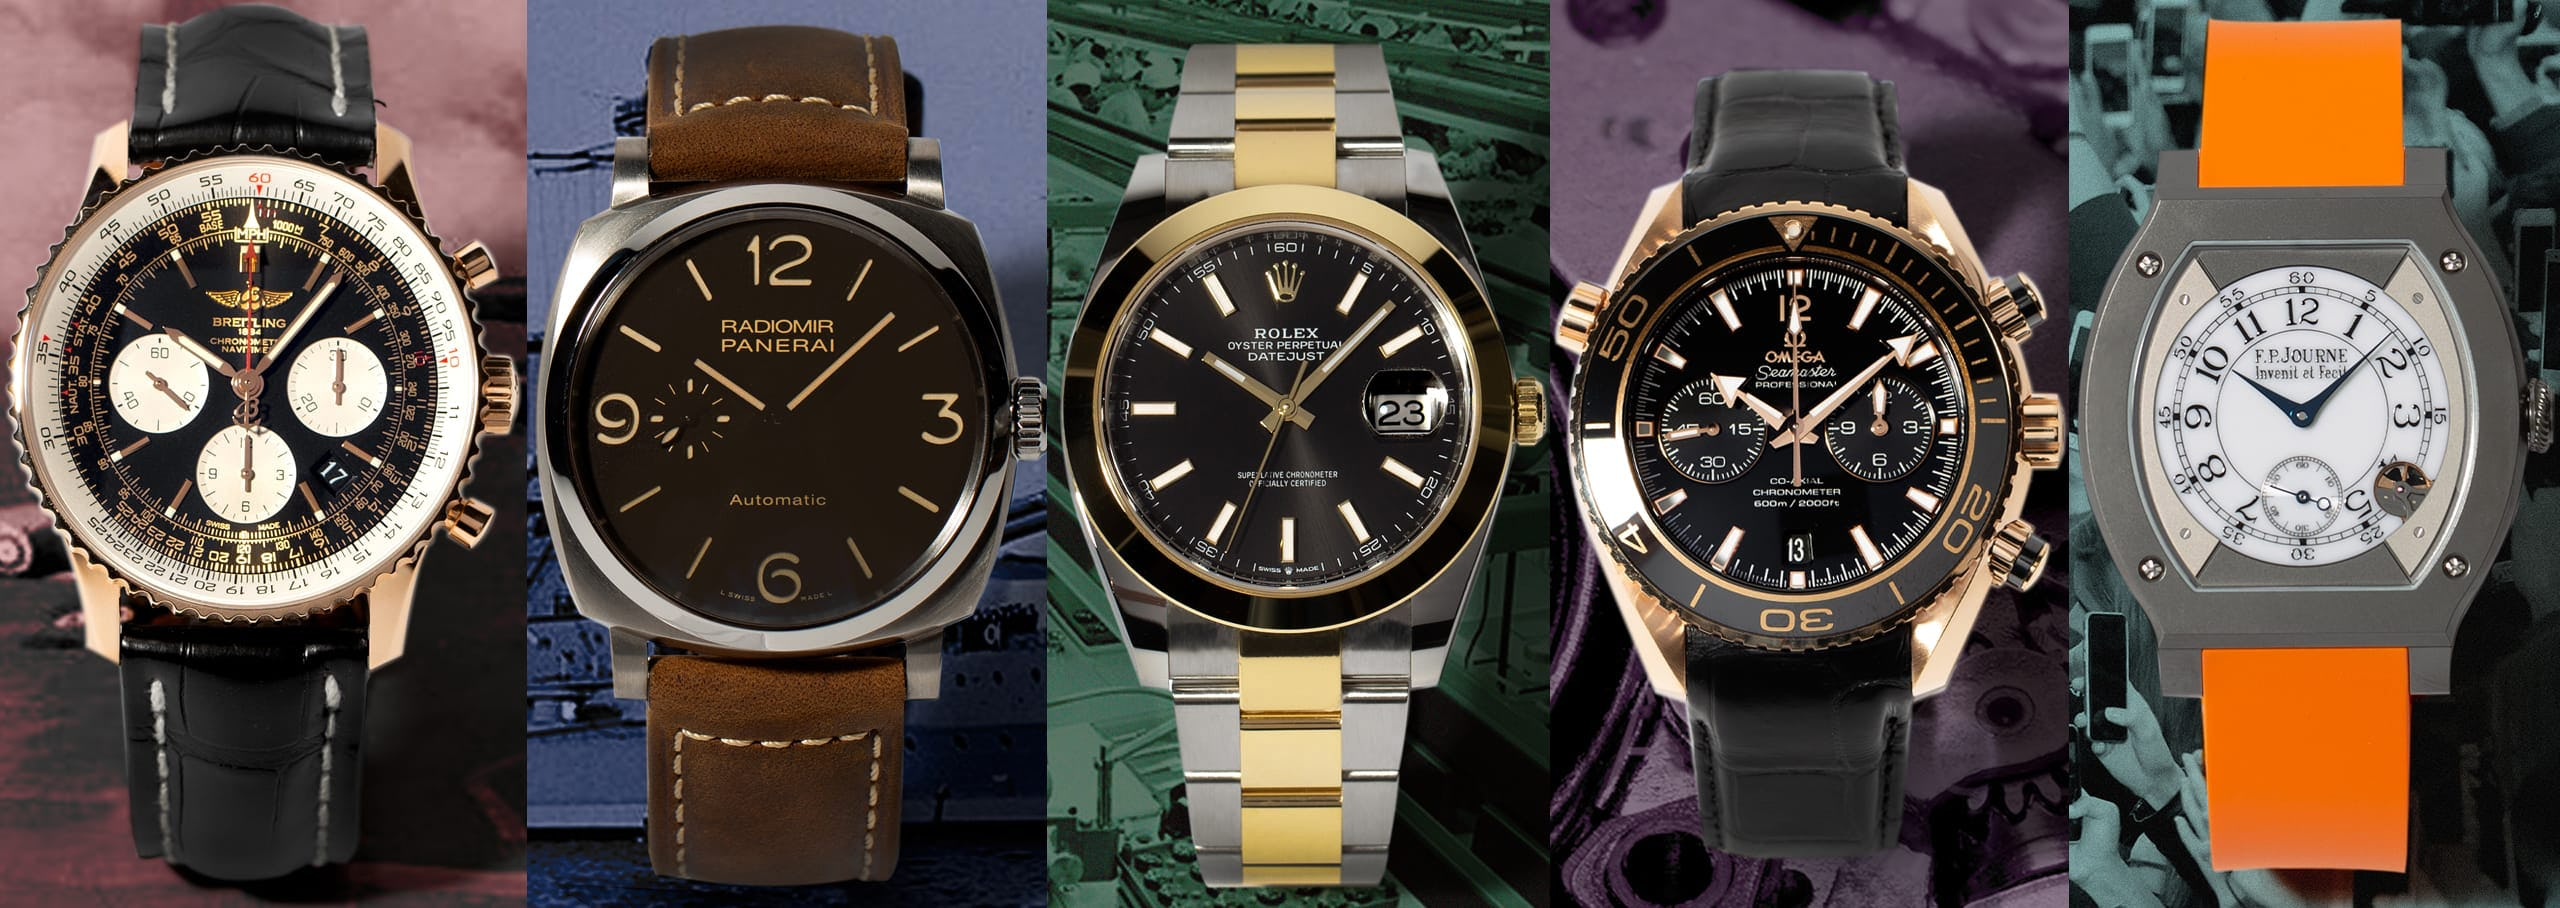 The Power of Necessity   Innovation in Watchmaking